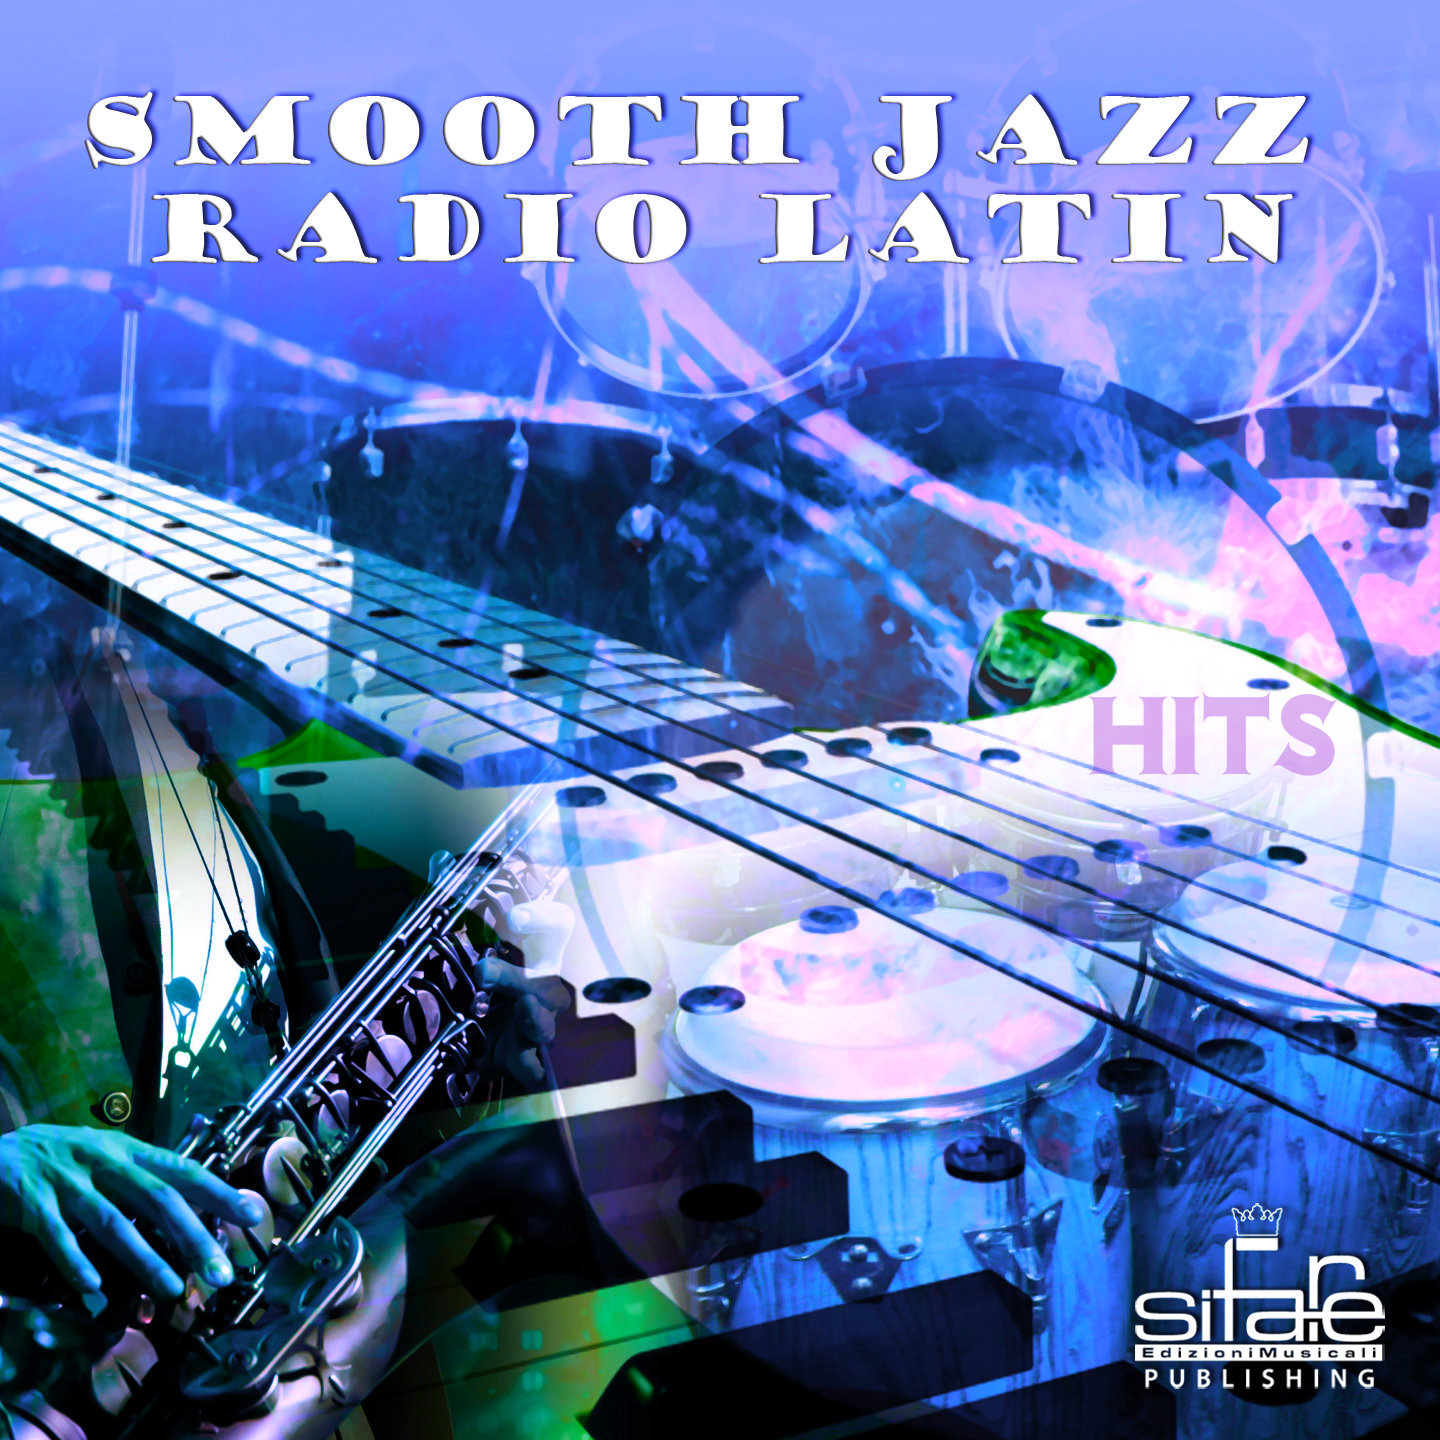 Smooth radio dating sign in